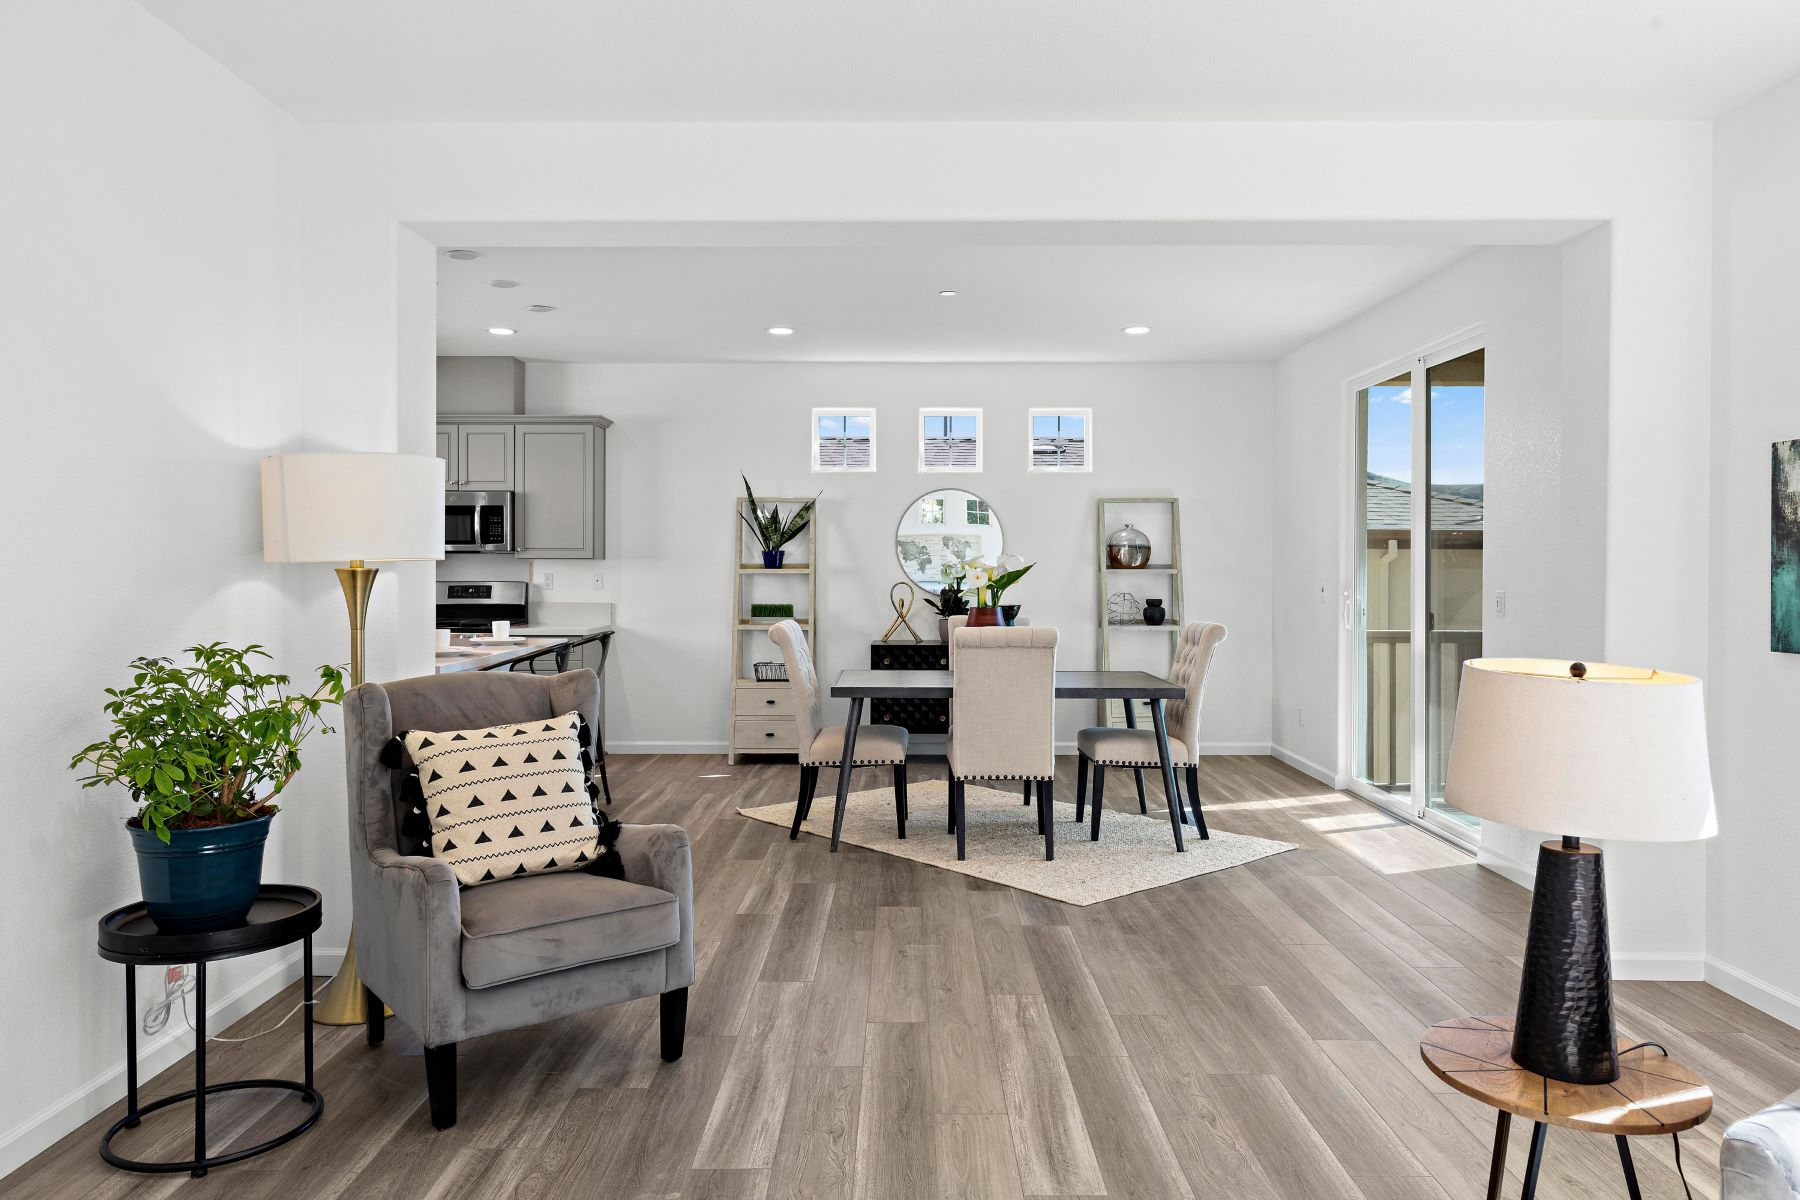 Single Family Homes for Active at Brand New Community 467 Colina Way El Sobrante, California 94803 United States